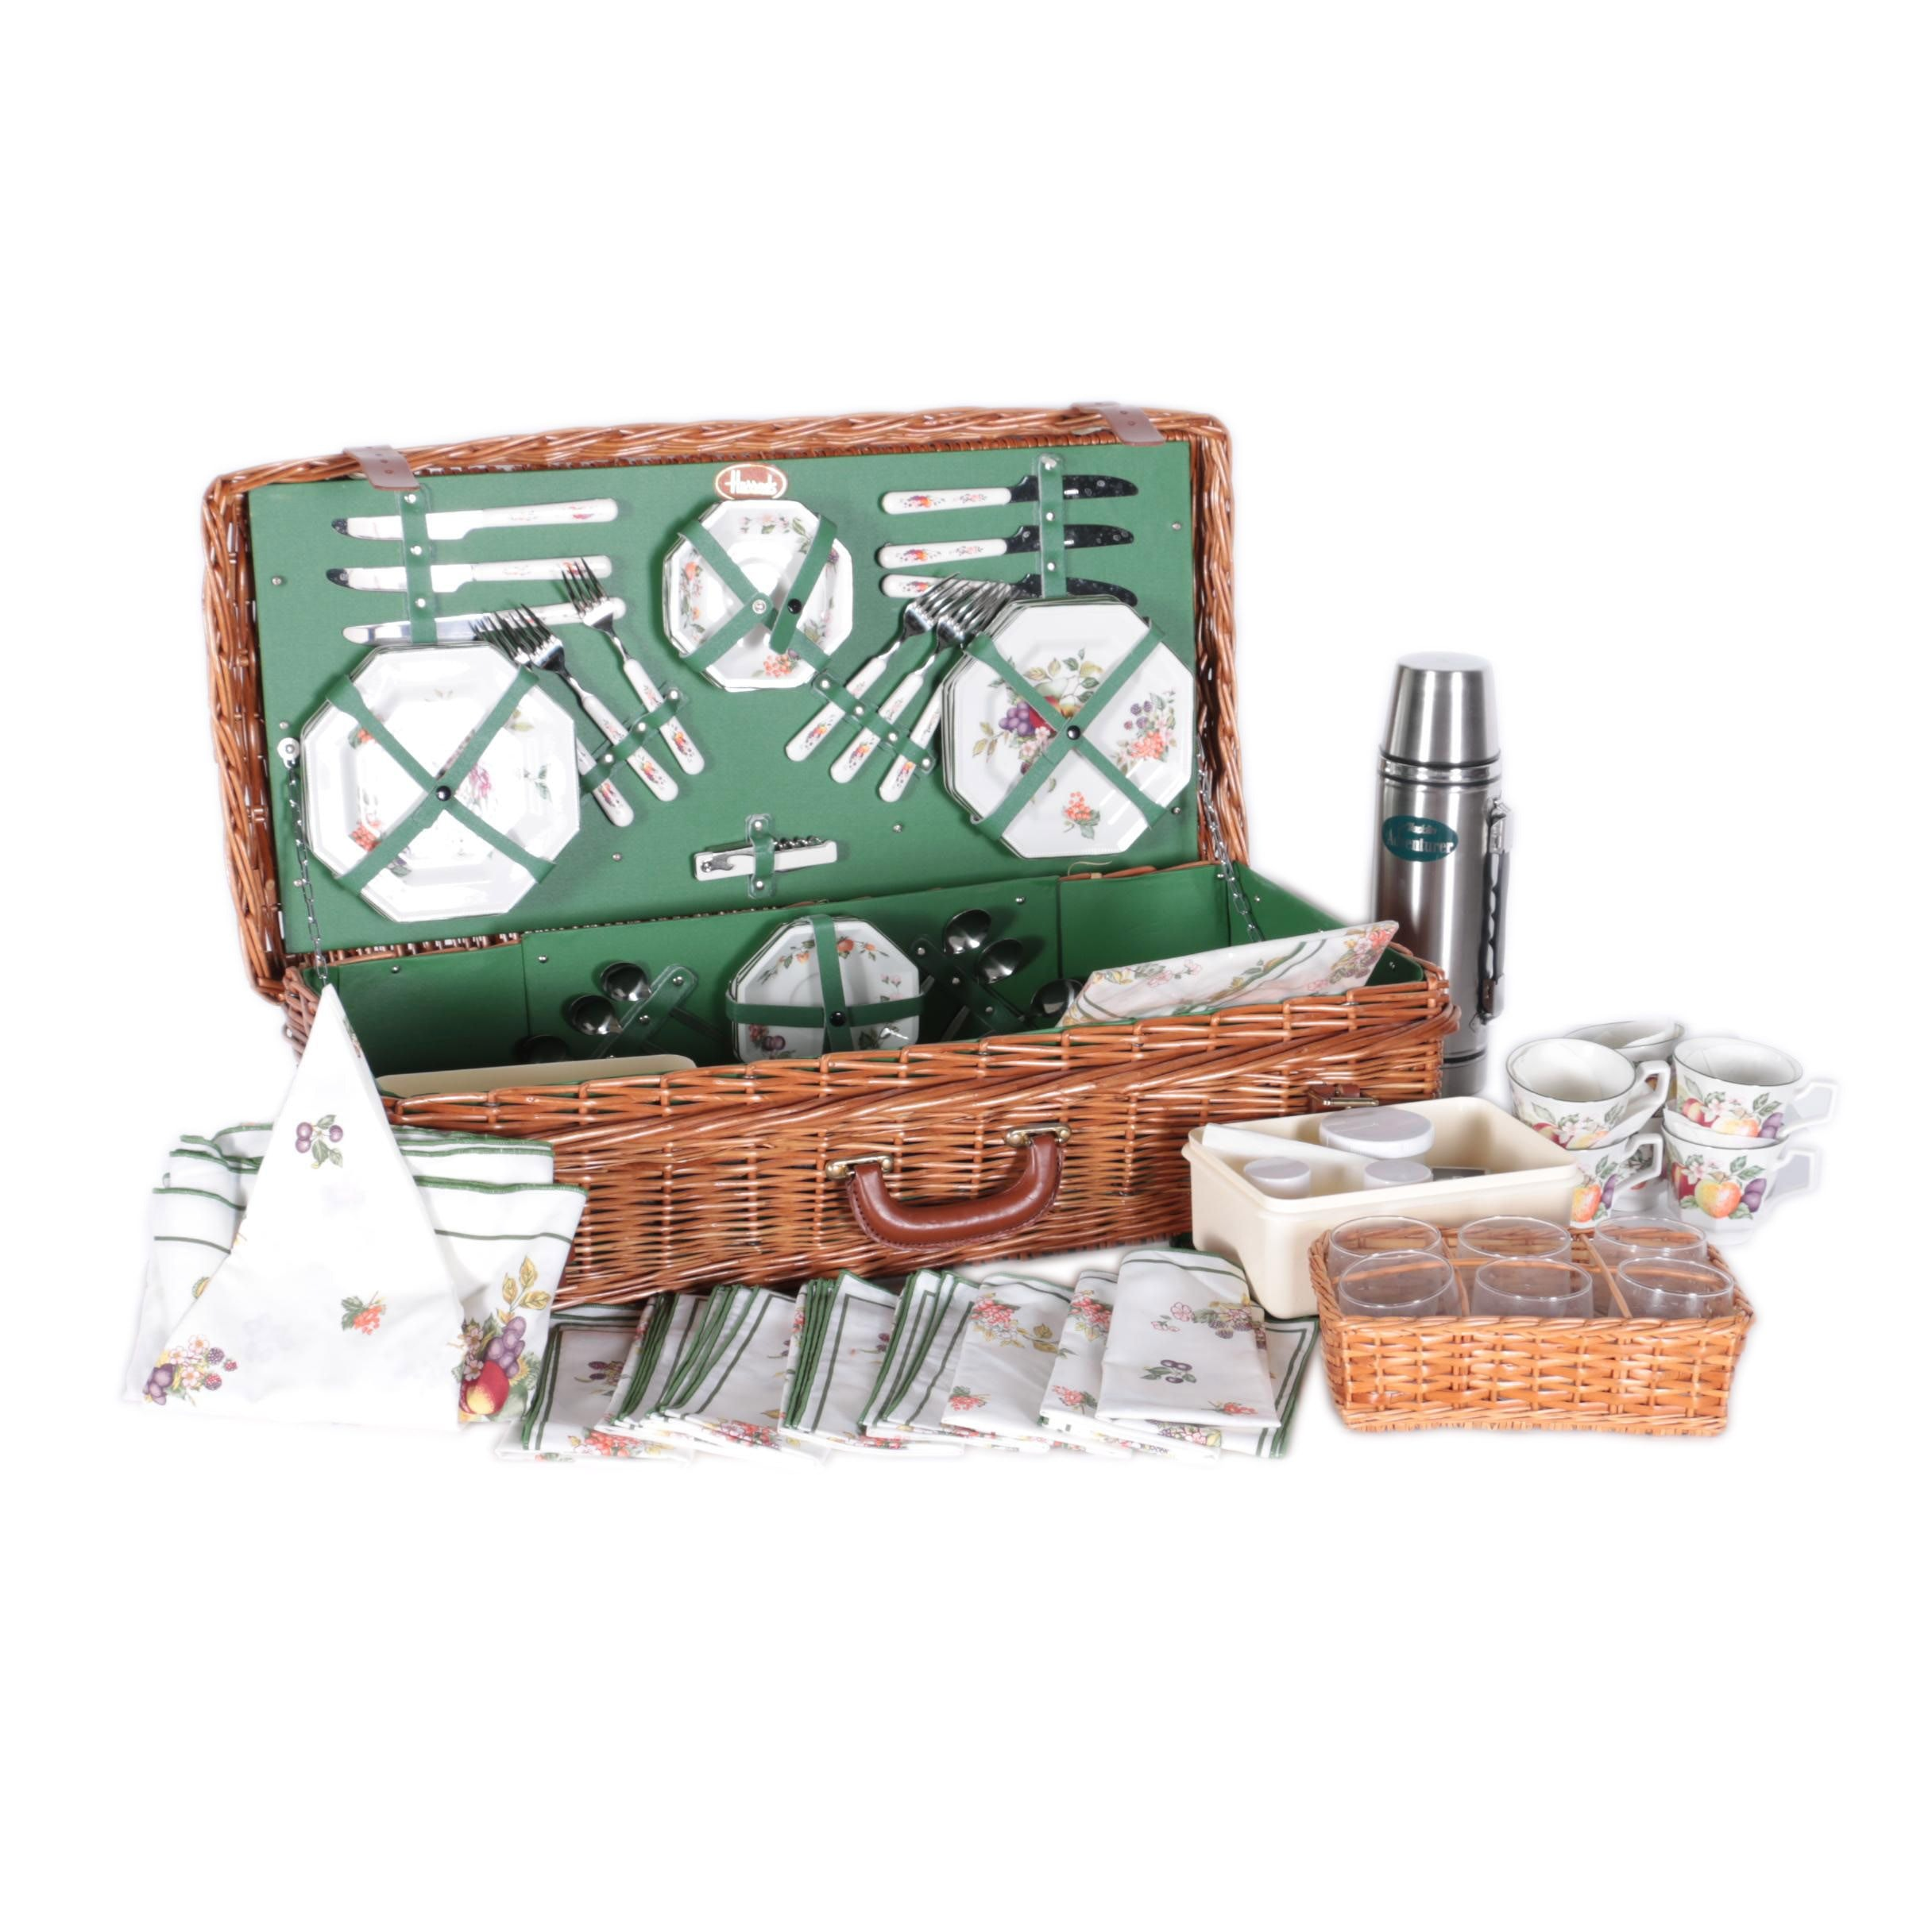 Six-Person Picnic Basket From Harrods